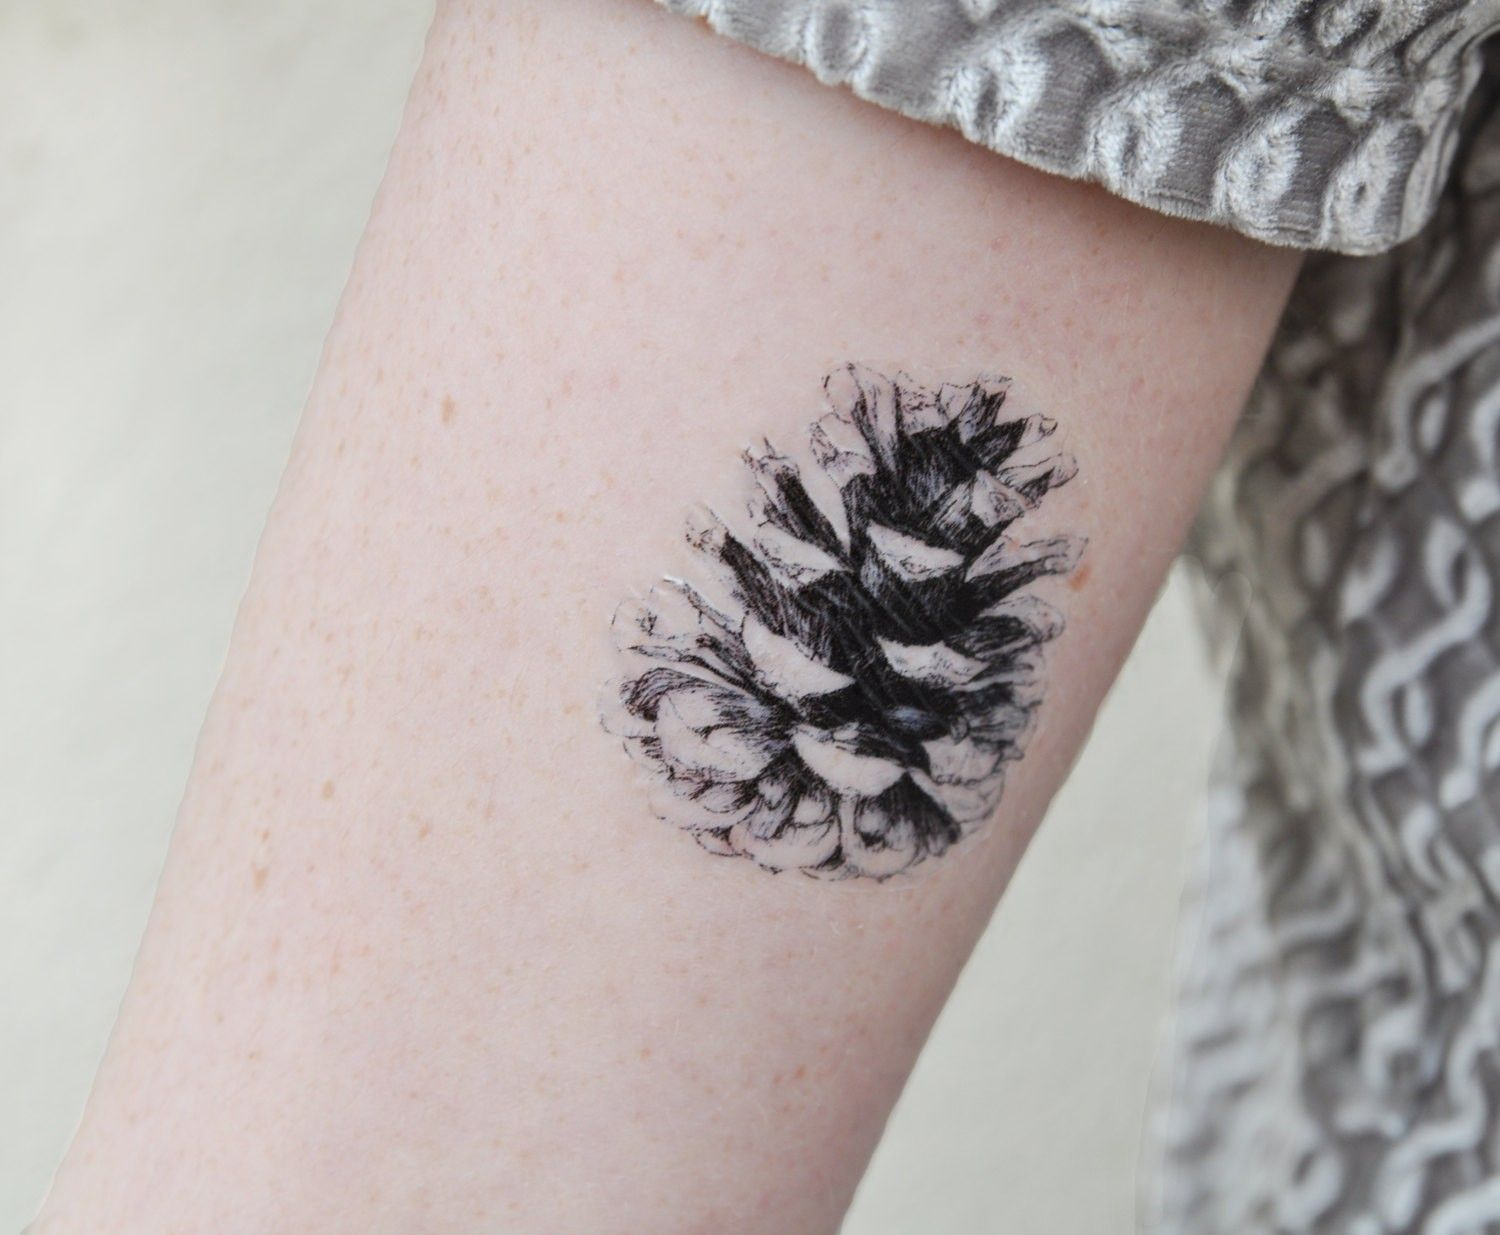 evergreen tree tattoo forearm - Google Search | I want a ...